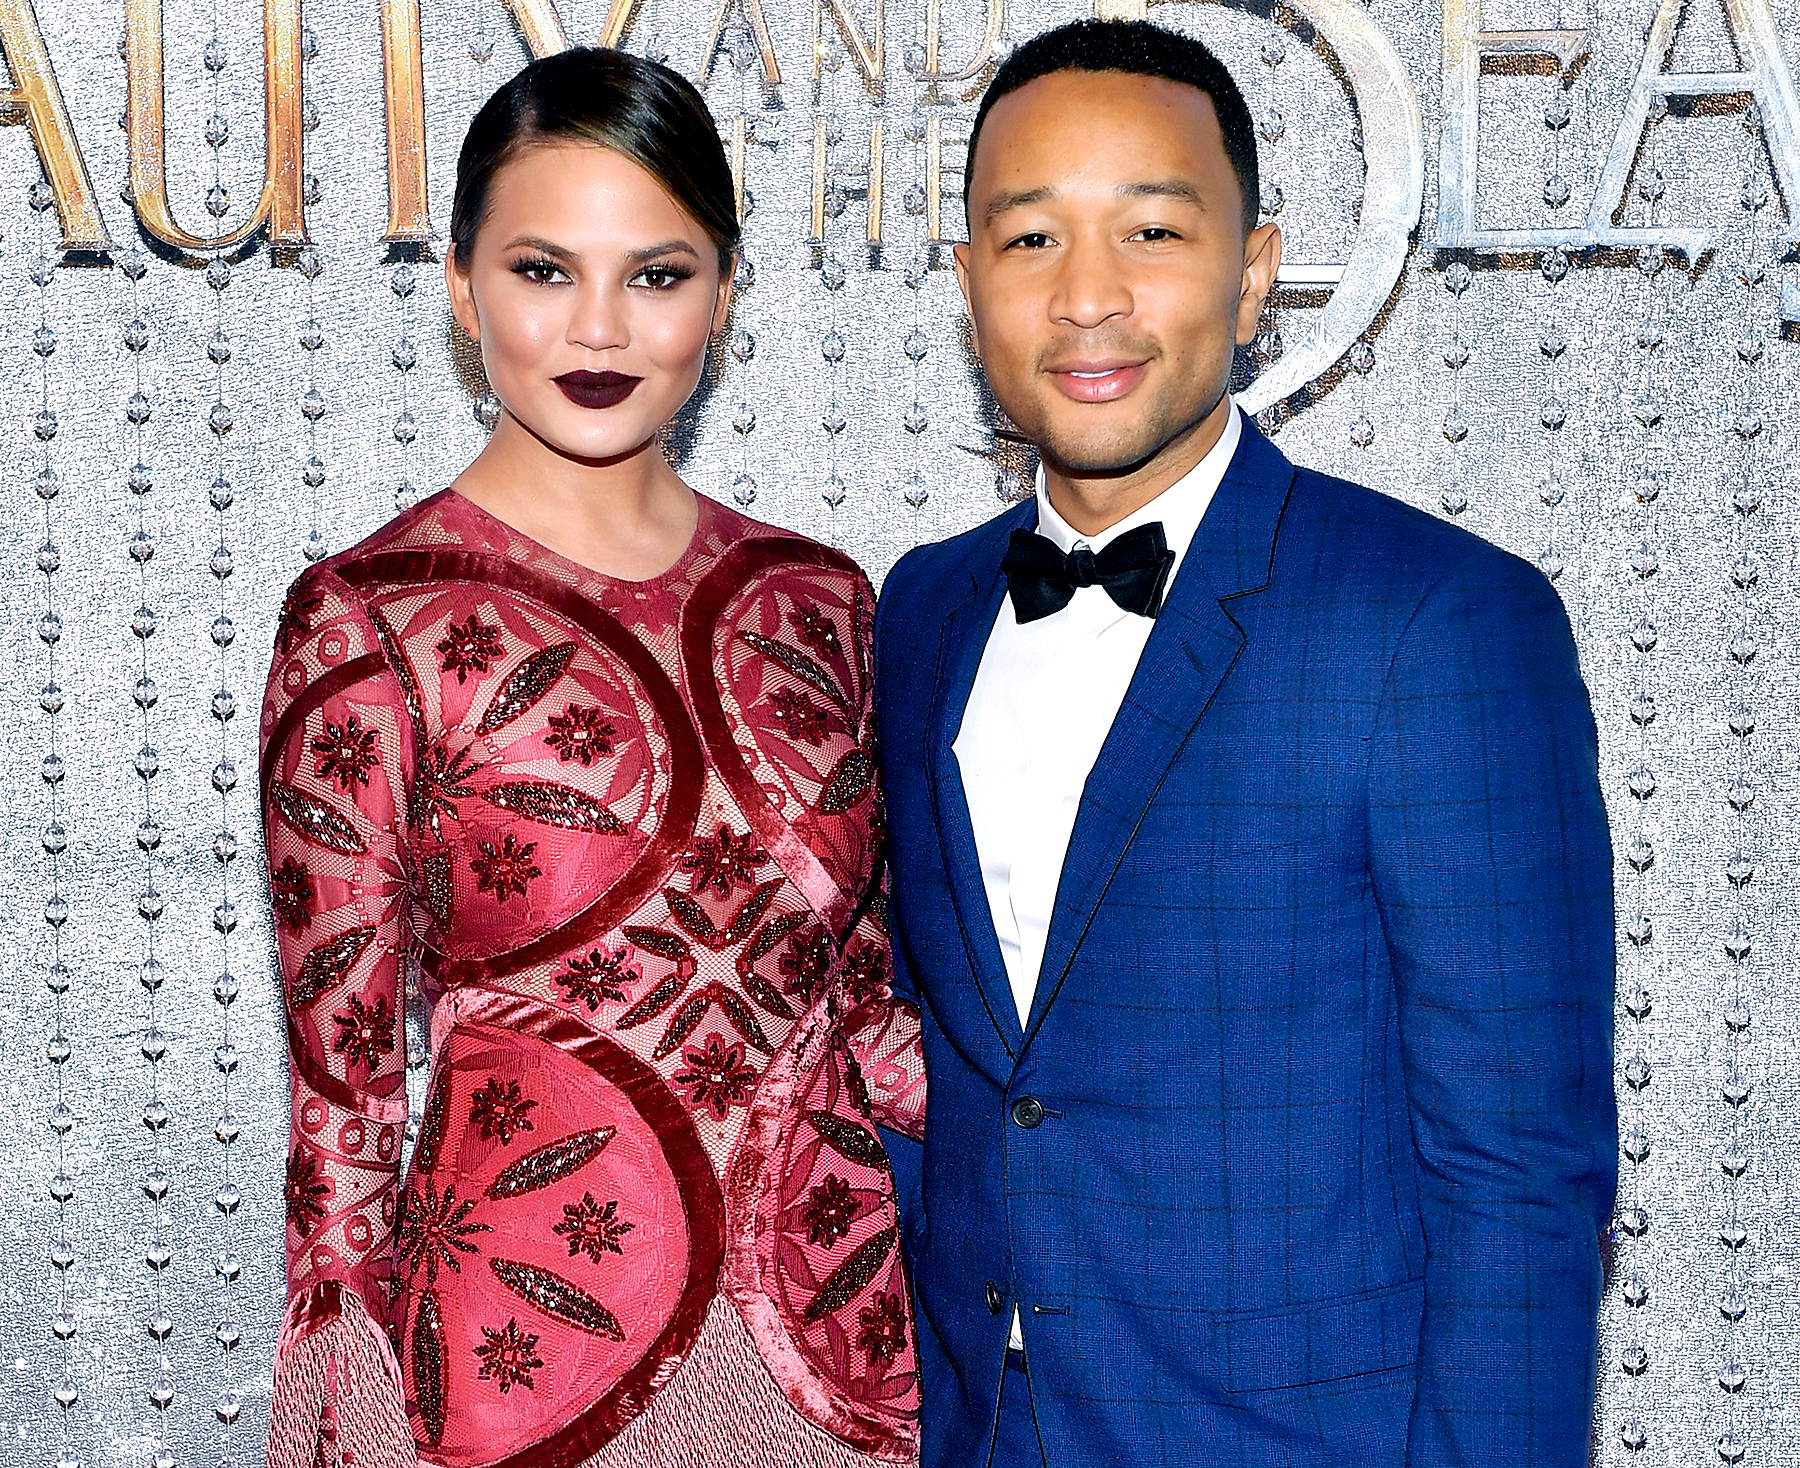 """Chrissy Teigen and John Legend arrive at the world premiere of Disney's new live-action """"Beauty and the Beast"""" photographed in front of the Swarovski crystal wall at the El Capitan Theatre on March 2, 2017 in Hollywood, California."""